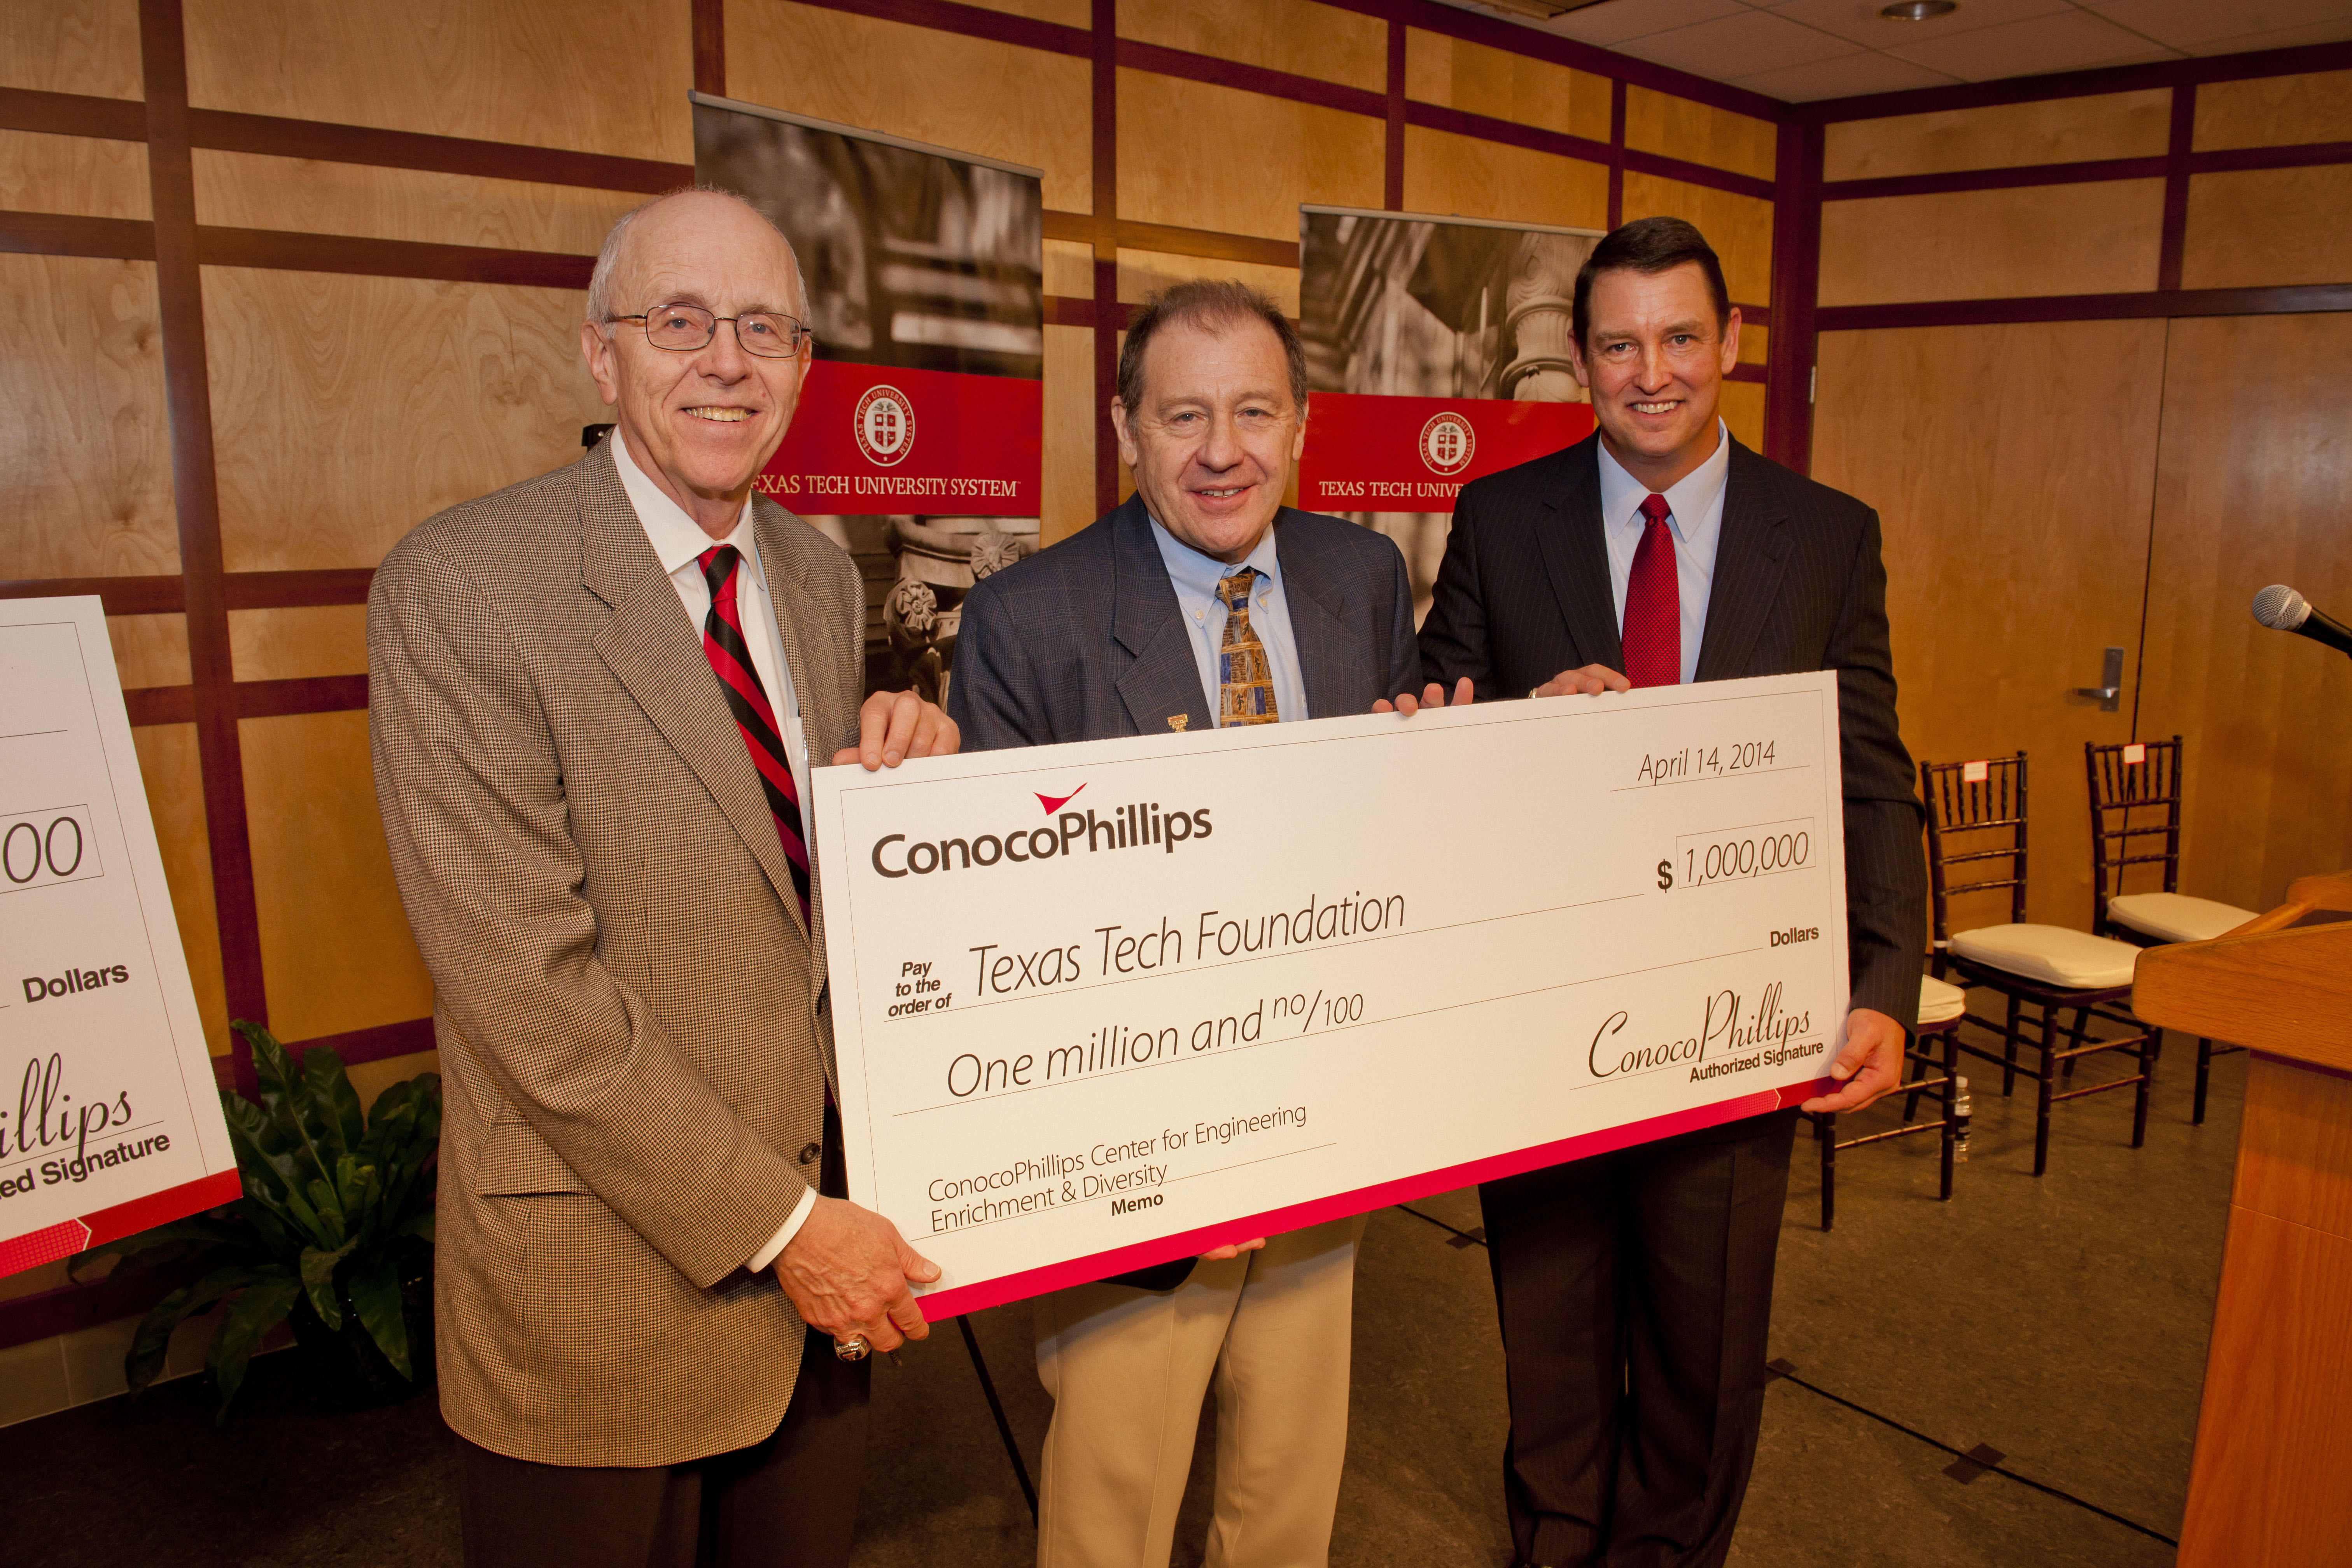 Texas Tech Chancellor Kent Hance and Dean of Engineering Al Sacco accept a $1 million check from Tom Mathiasmeier, ConocoPhillips president, North America Gas & Power. (Photo: Business Wire)